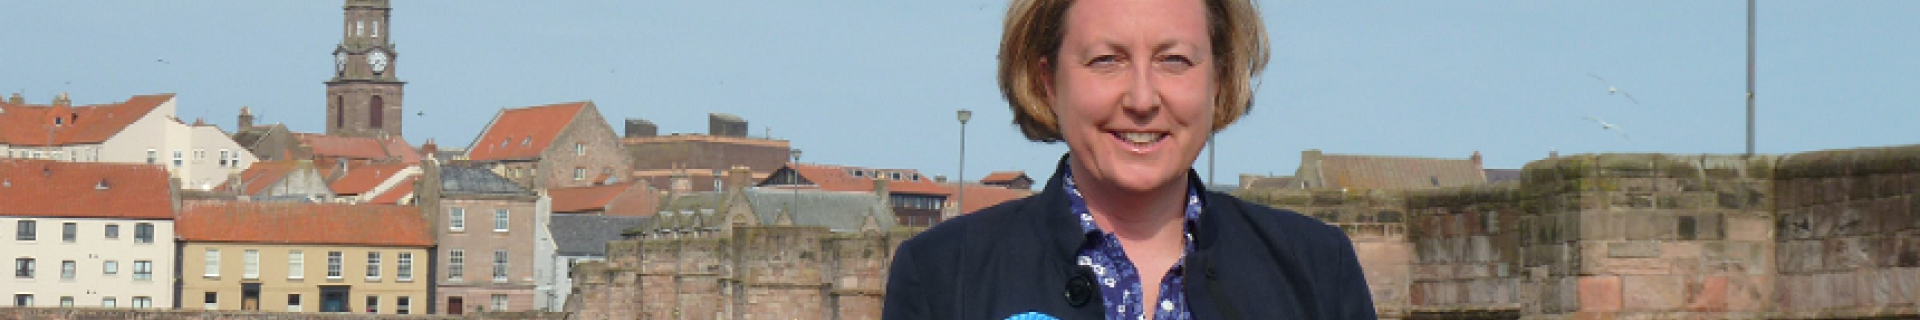 Banner image for Anne-Marie Trevelyan MP